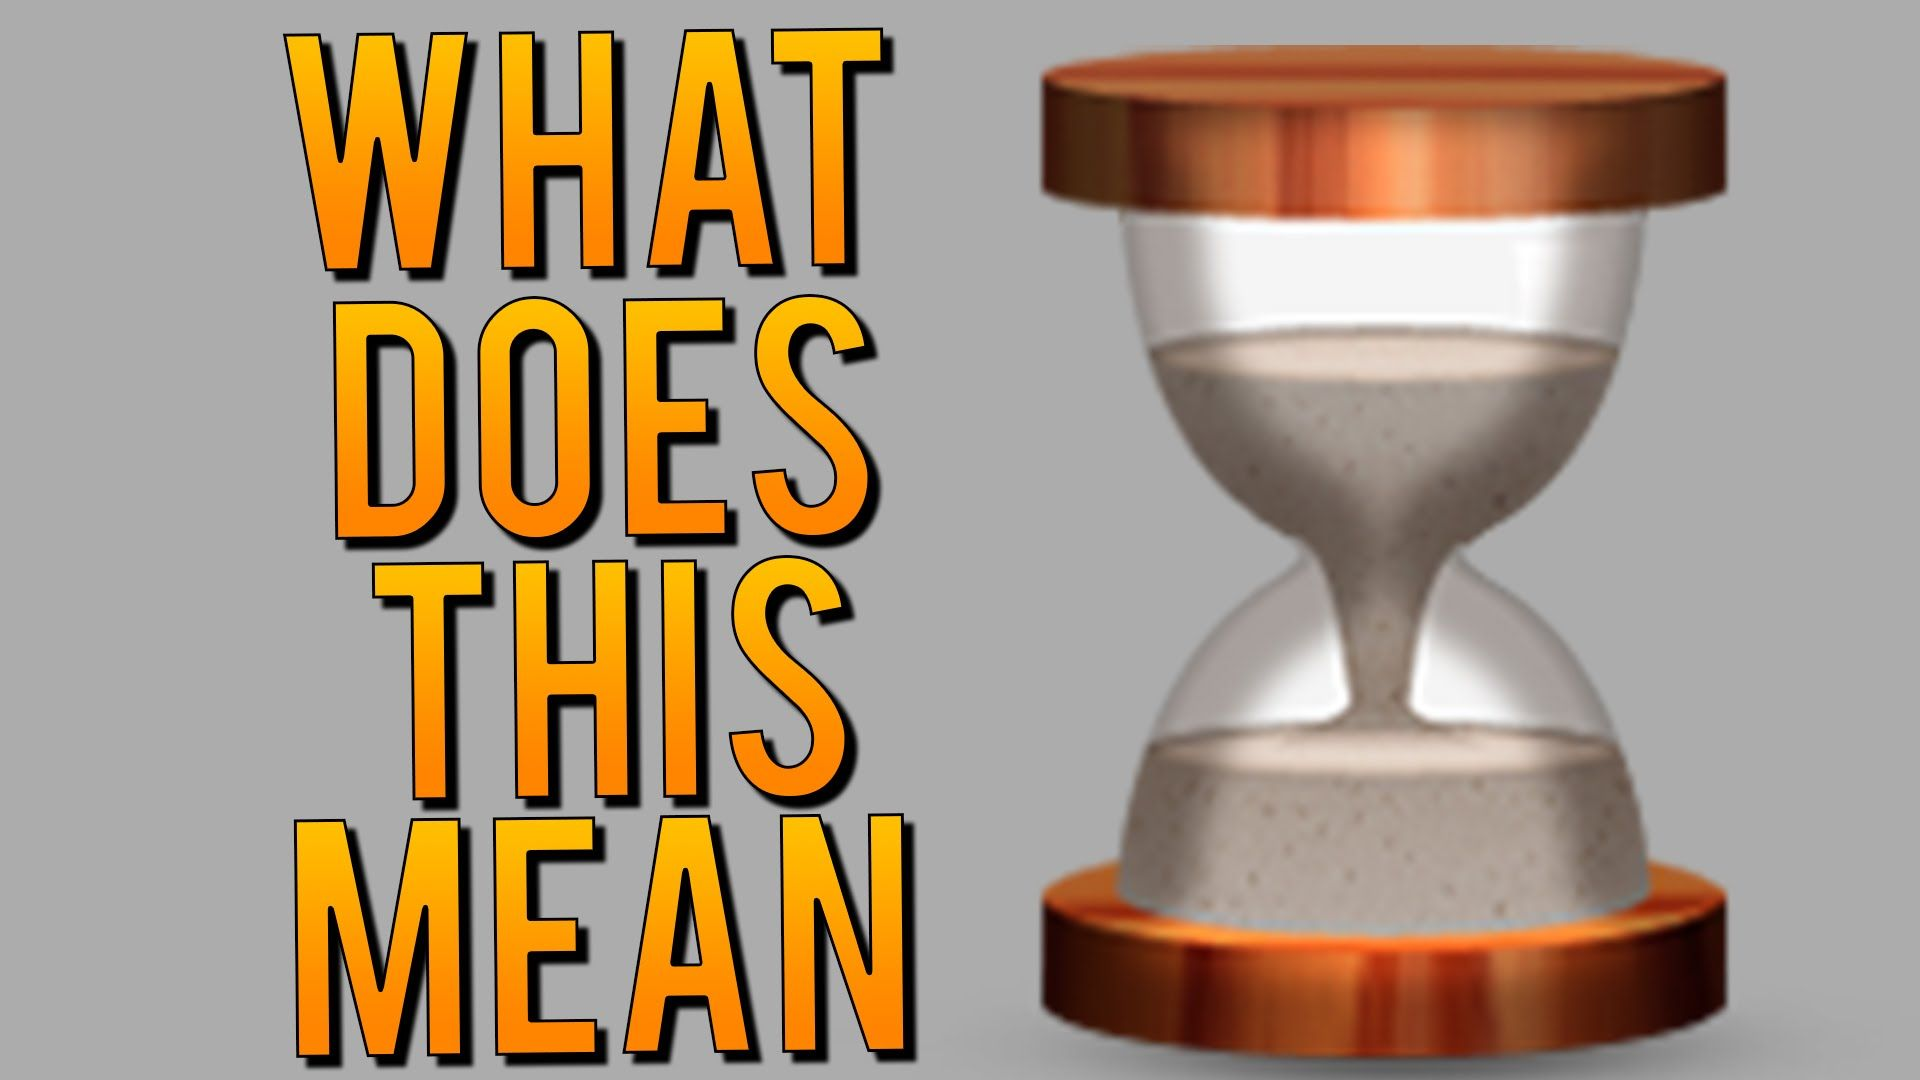 What is the snapchat hourglass emoji how to get more text what is the snapchat hourglass emoji how to get more text snapchat quick buycottarizona